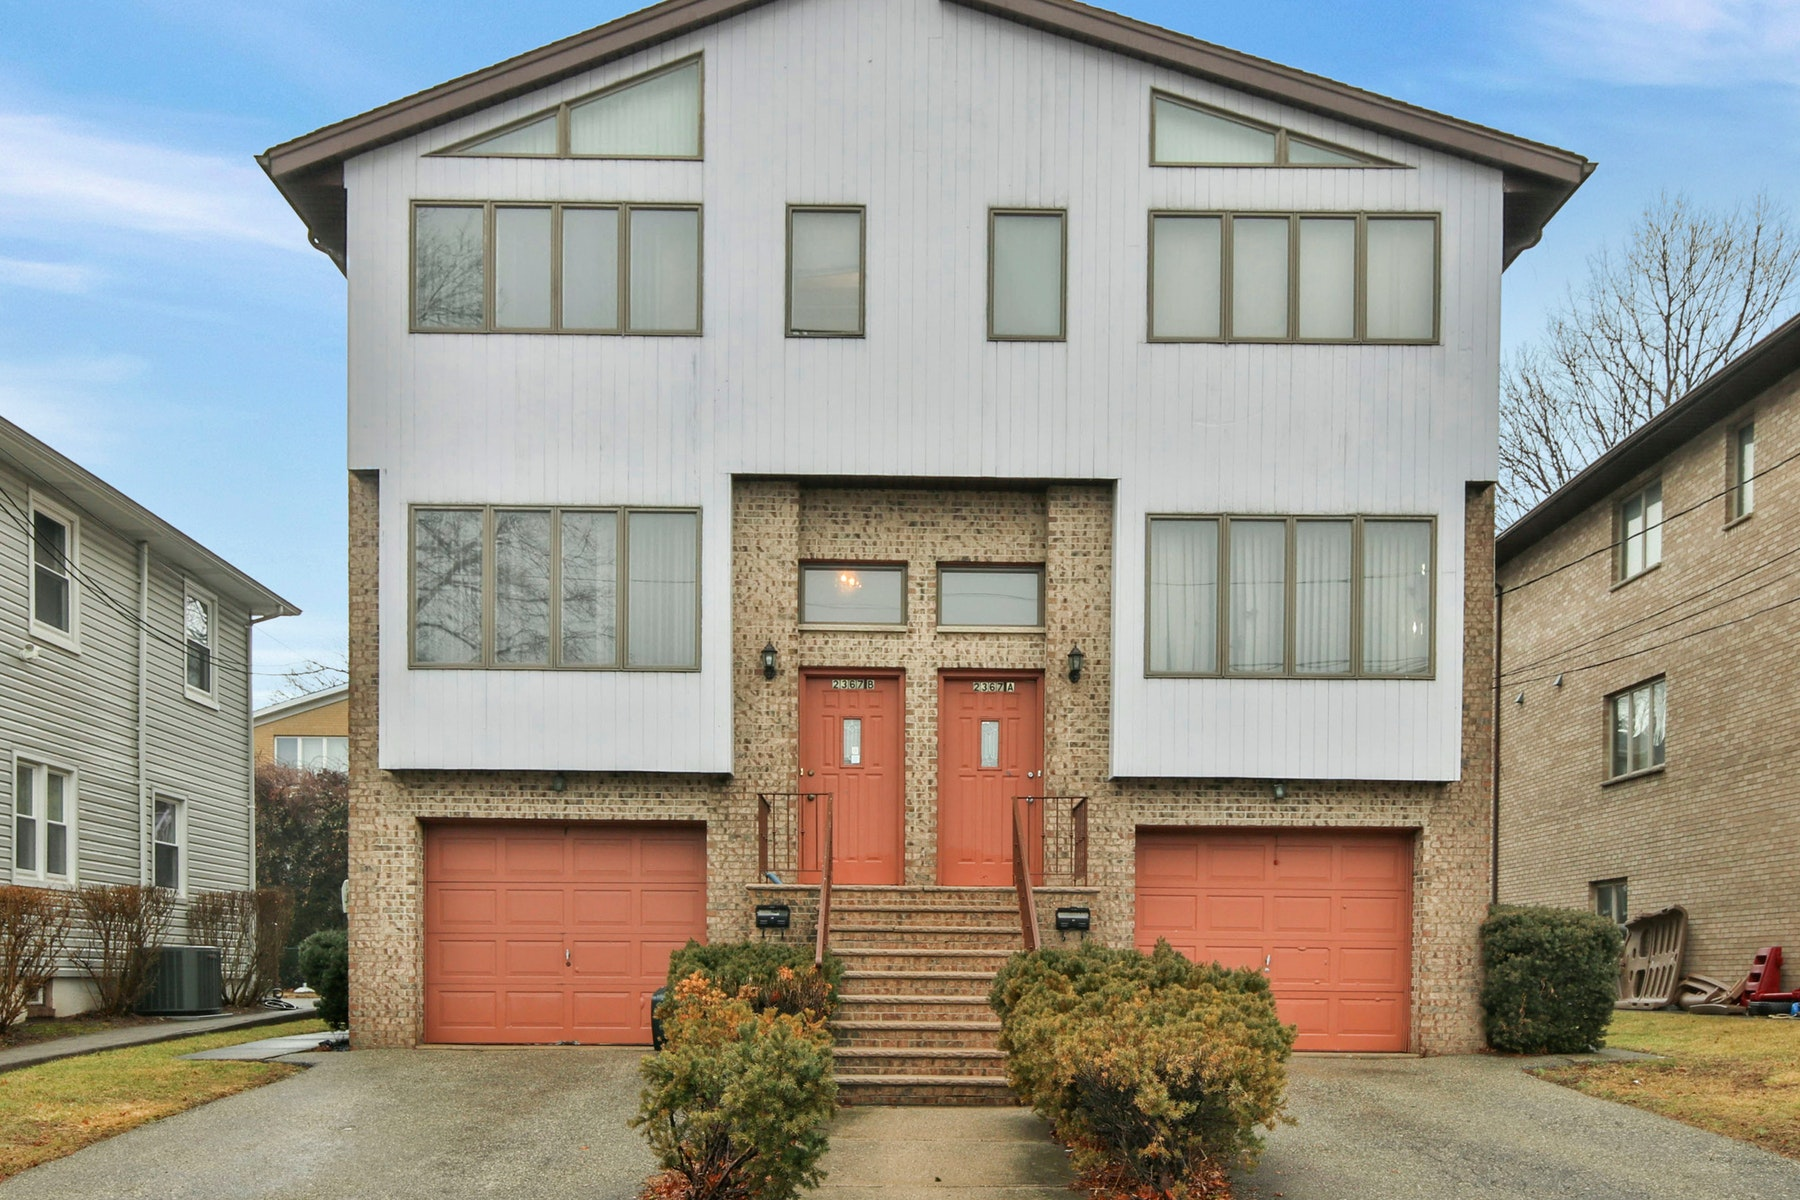 Multi-Family Home for Sale at Spacious Two Family Home 2367 7th Street, Fort Lee, New Jersey, 07024 United States